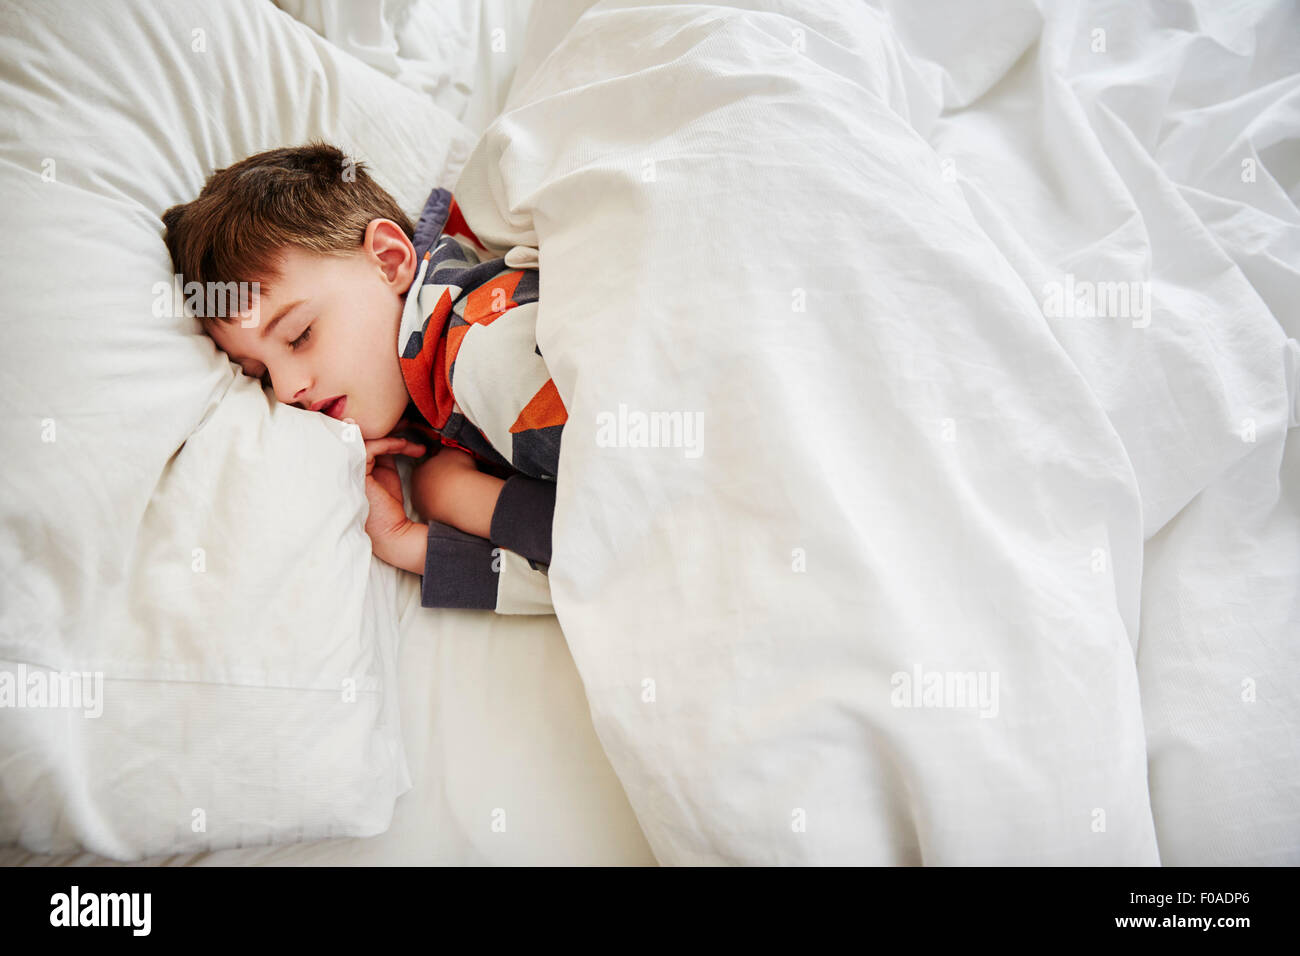 Young boy sleeping in bed - Stock Image